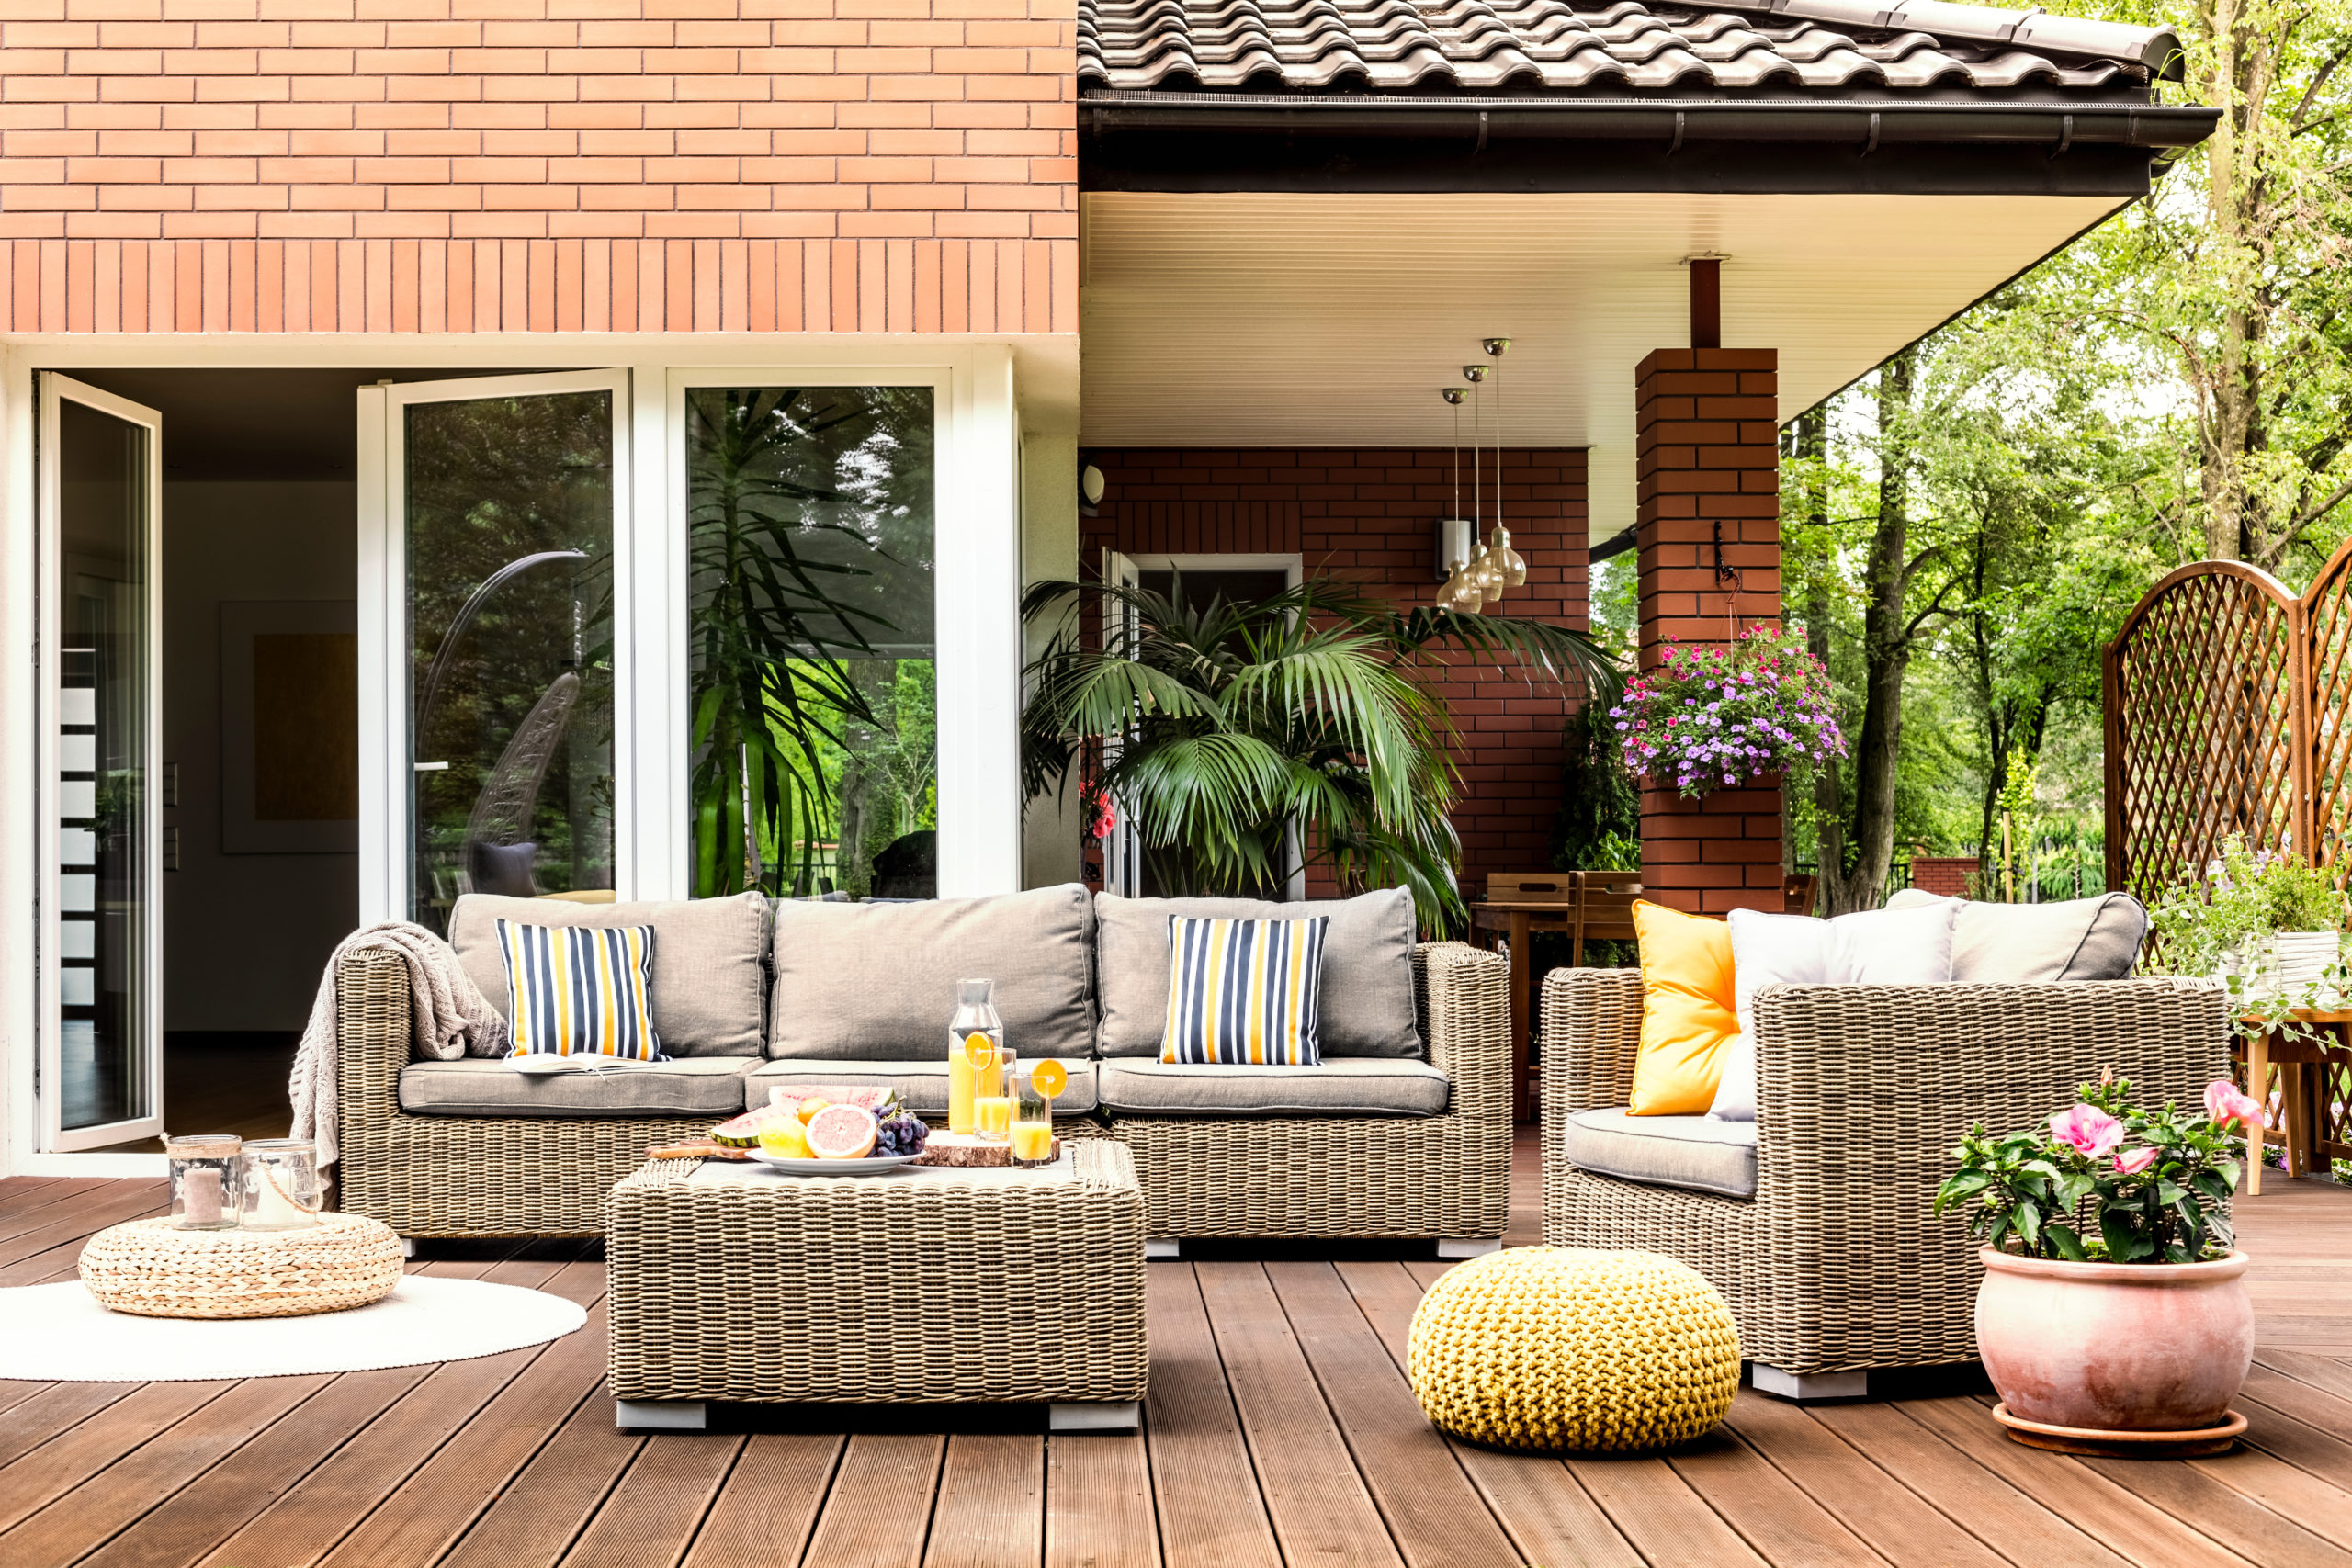 Expanding Your Outdoor Living Space with Tile | St. Louis ... on Outdoor Living Space Company id=88535